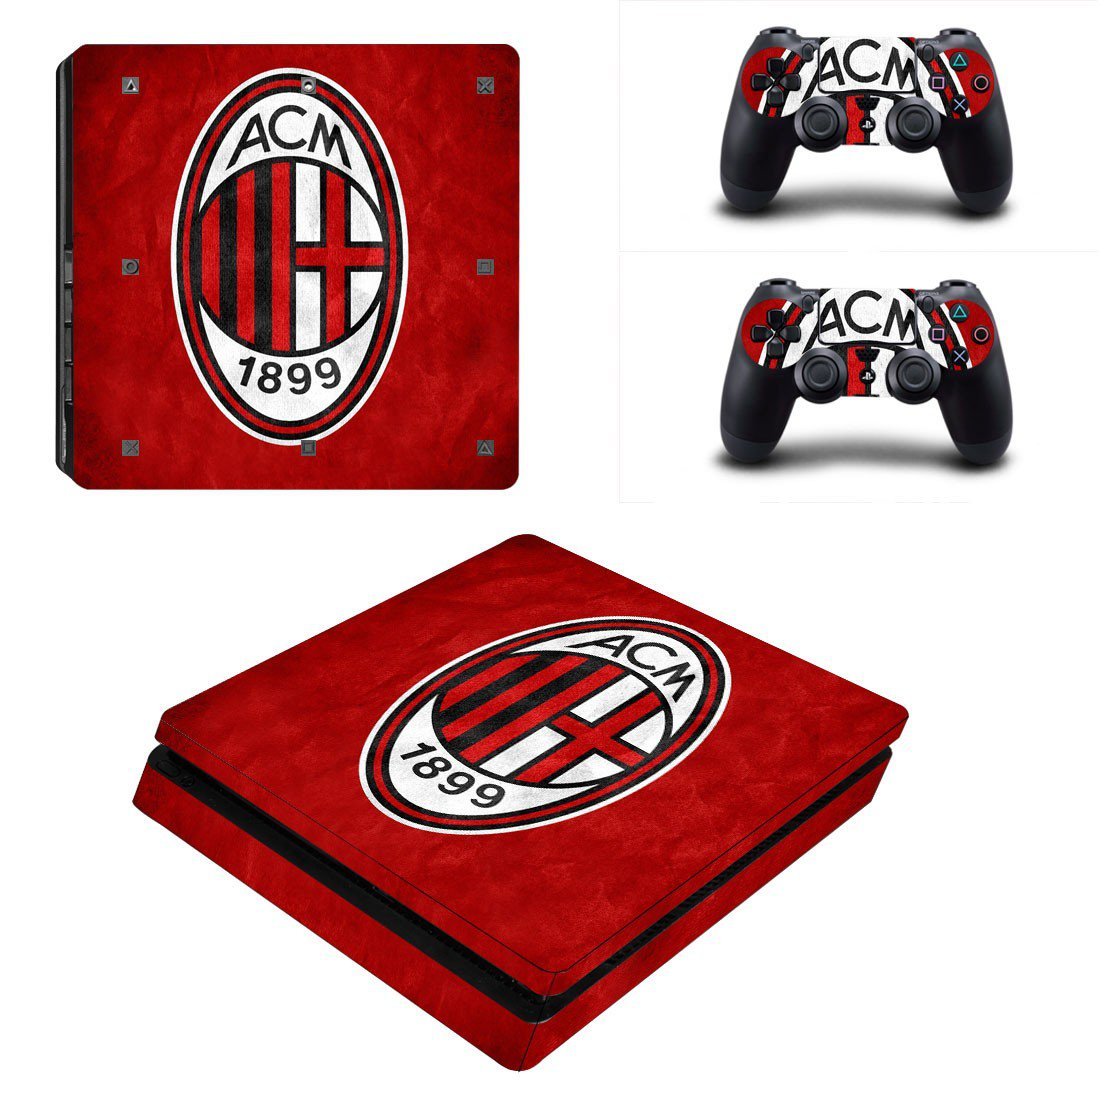 AC milan Play Station 4 slim skin decal for console and 2 controllers